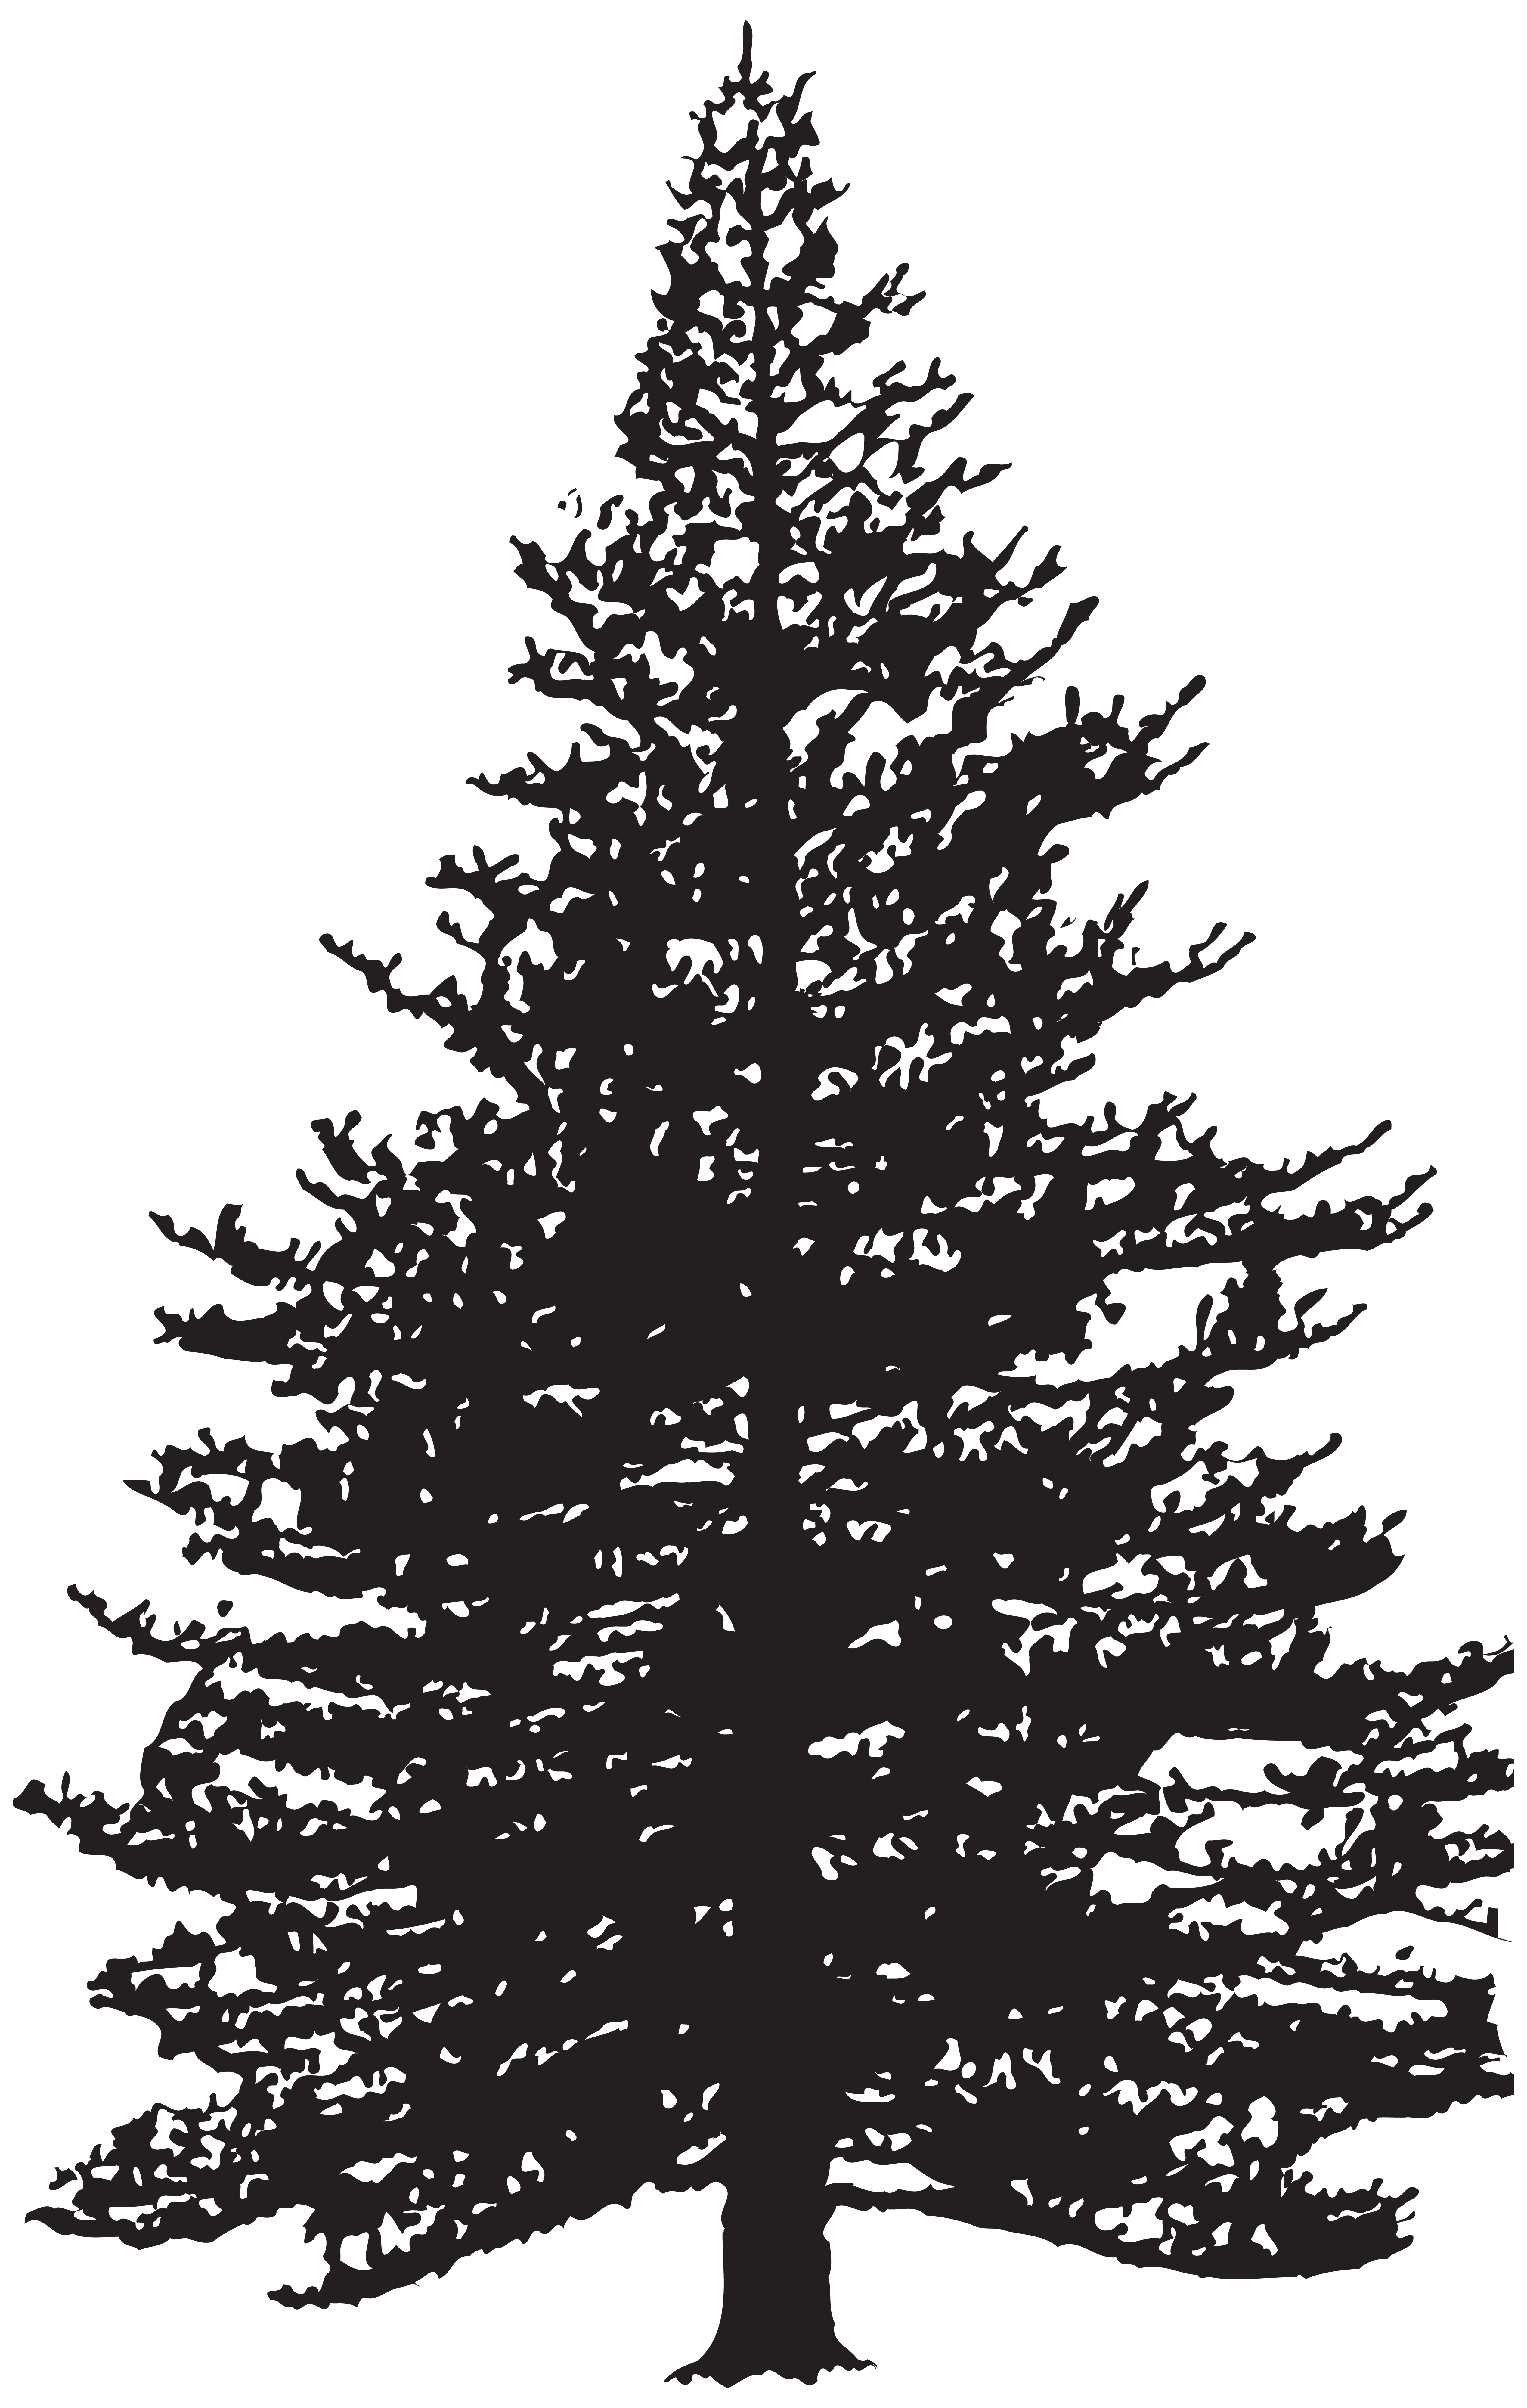 graphic black and white download Pine trees clipart black and white. Tree silhouette clip art